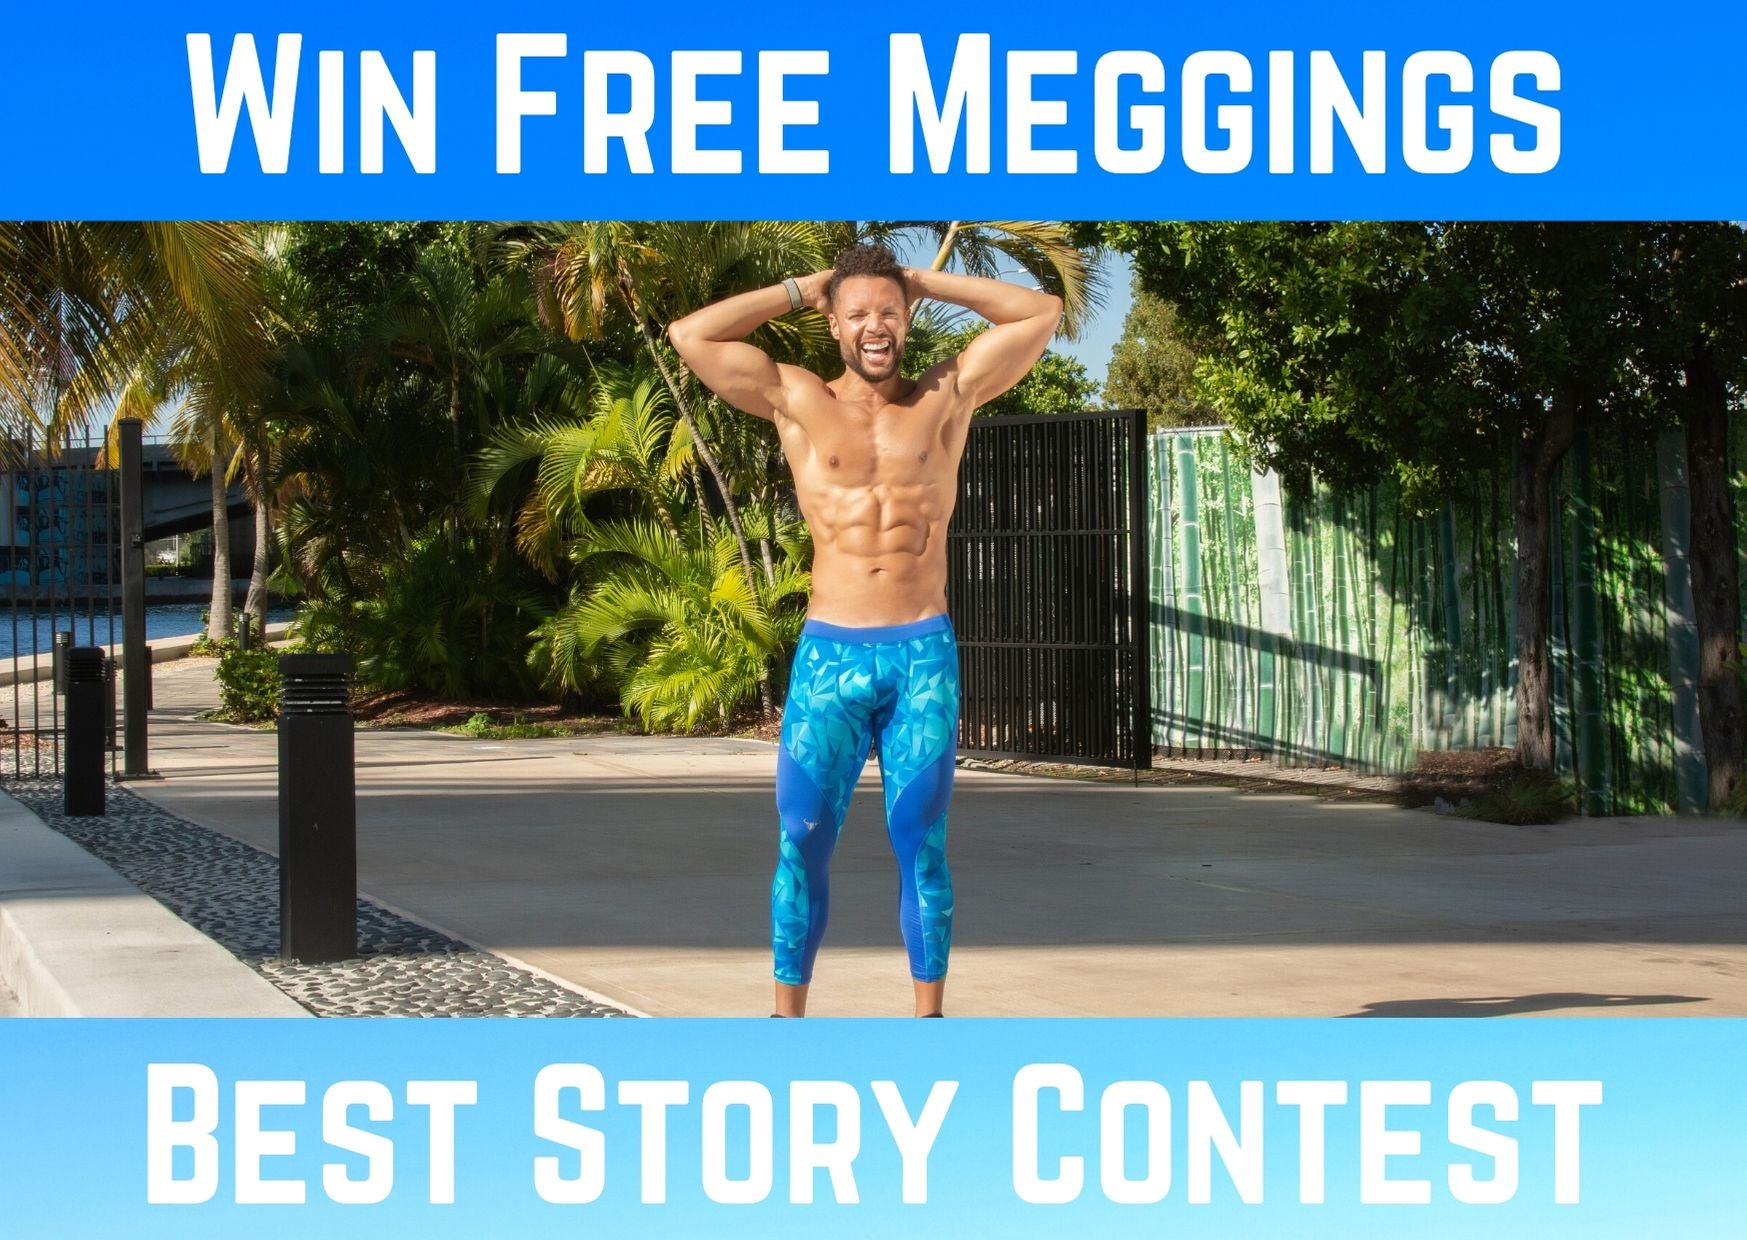 Banner - Win Free Meggings: Best Story Contest